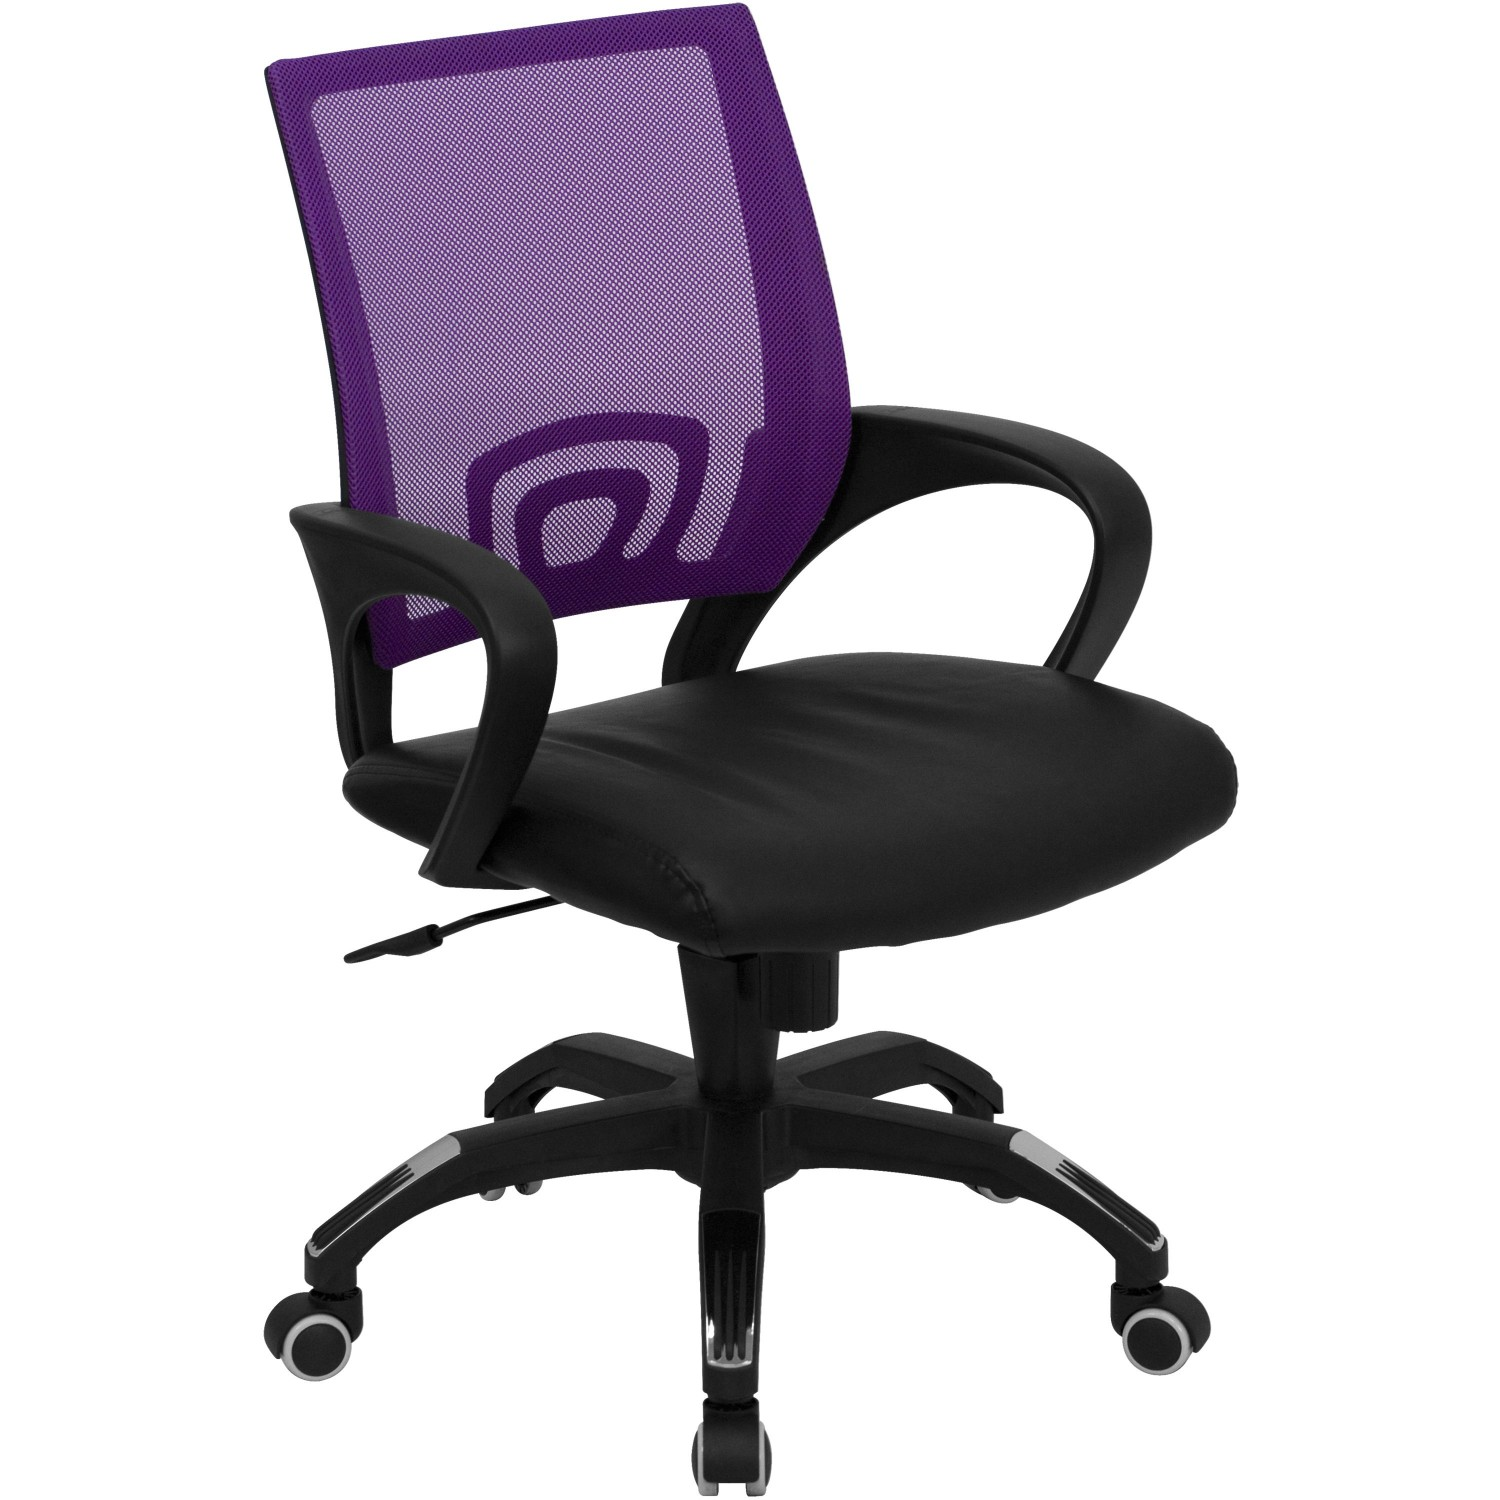 Flash Furniture CP-B176A01-PURPLE-GG Mid-Back Purple Mesh Computer Chair with Black Leather Seat